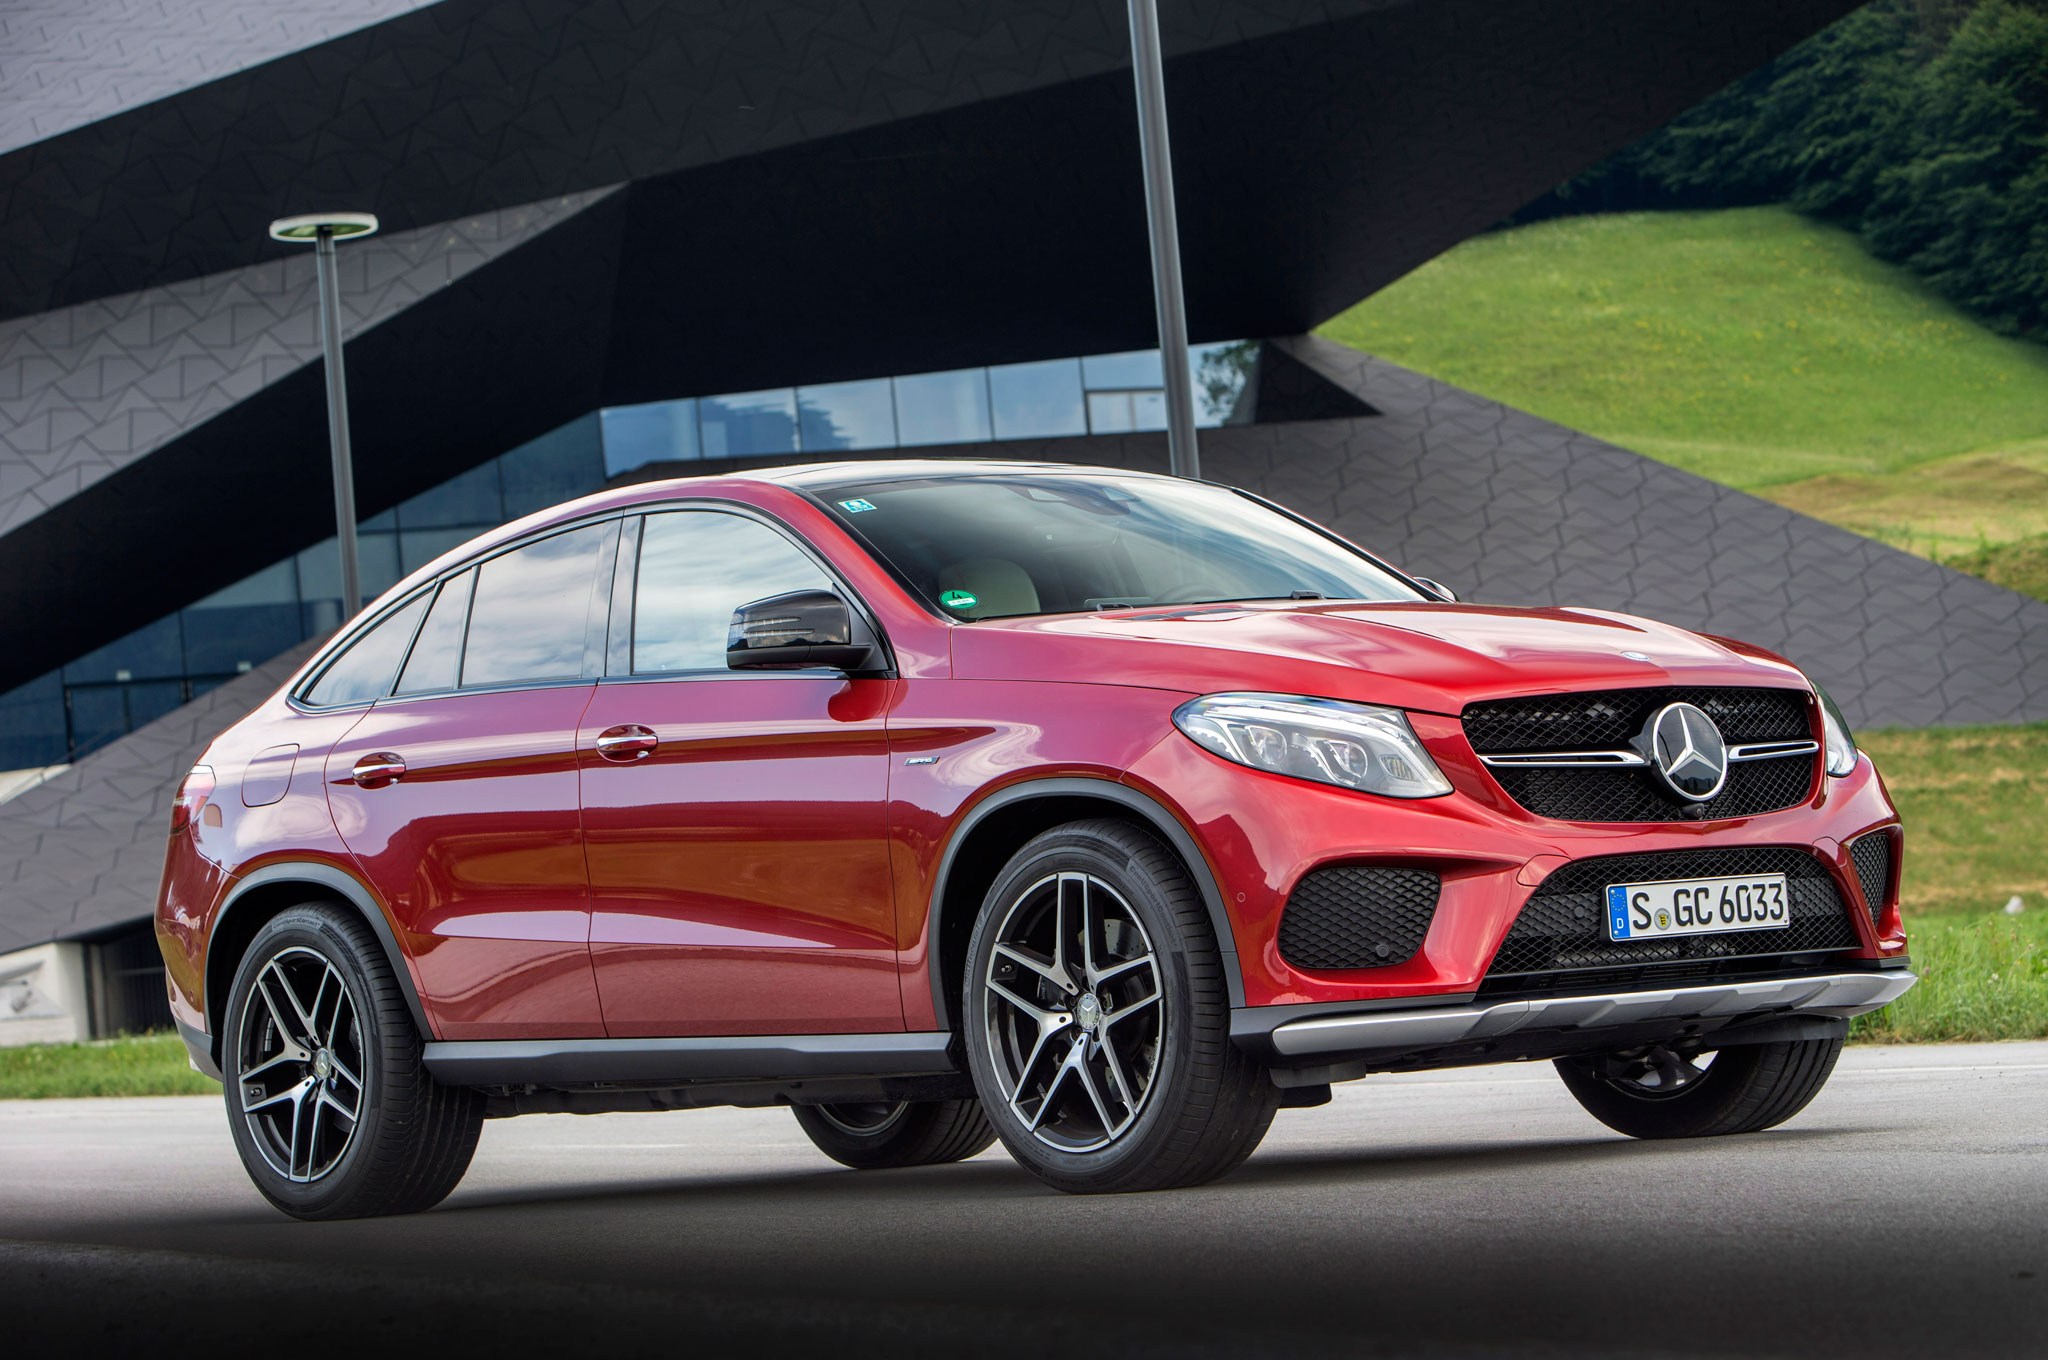 http://st.automobilemag.com/uploads/sites/11/2015/10/2016-Mercedes-Benz-GLE450-AMG-4Matic-Coupe-front-three-quarter-04.jpg